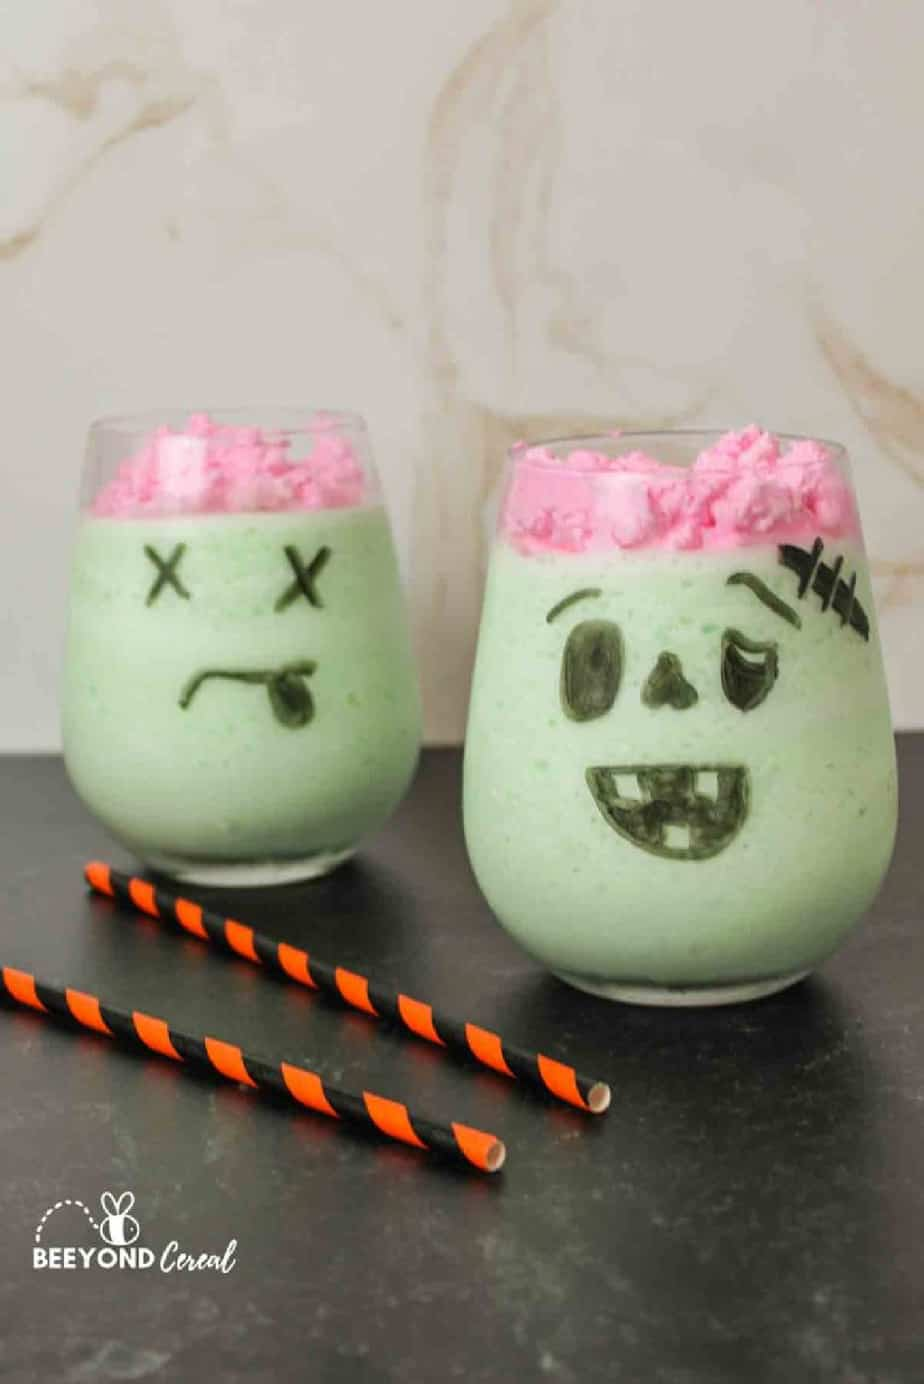 Green monster shaped drink with pink whipped cream to look like brains.